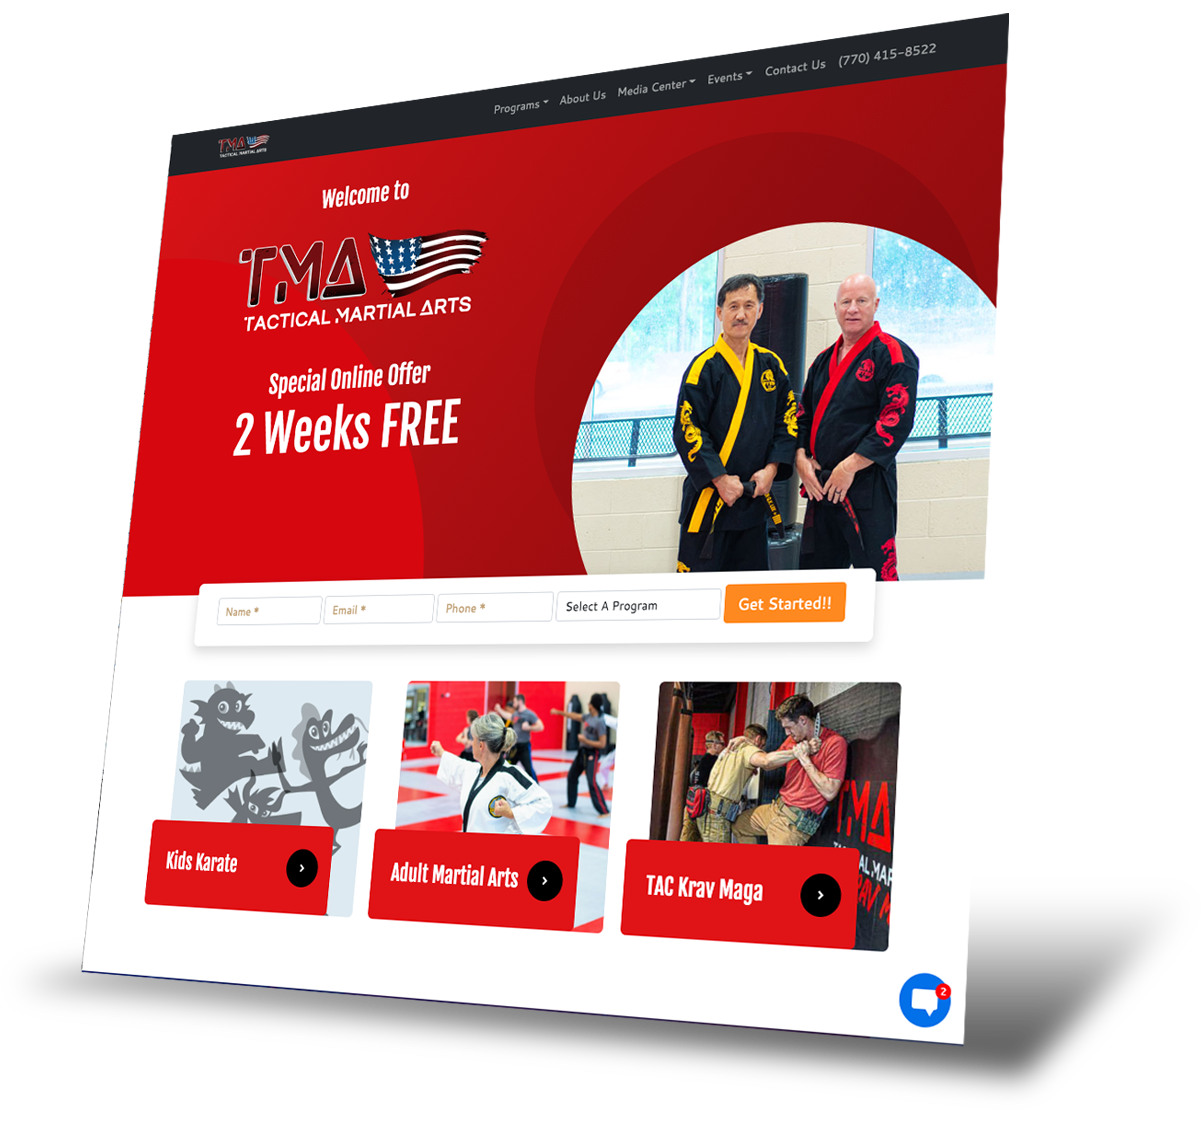 Tactical Martial Arts website home page